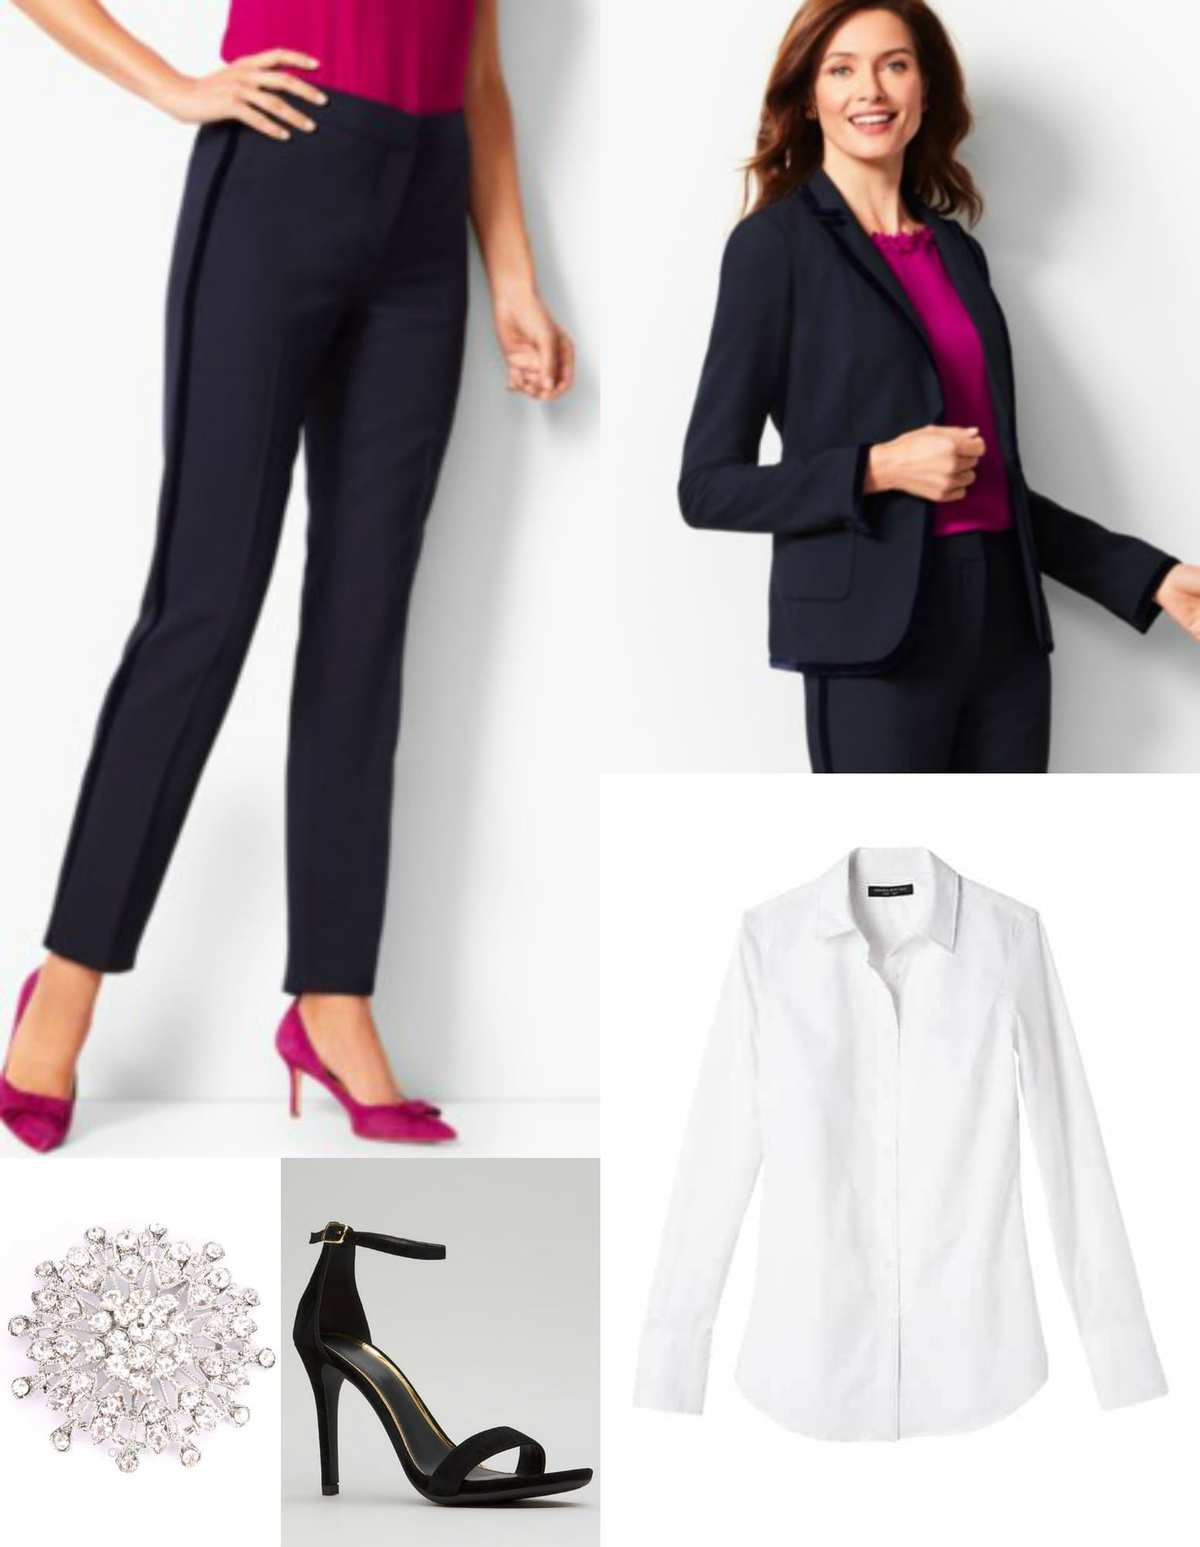 Navy velvet trimmed Talbots pantsuit with white button from shirt and a sparkly brooch